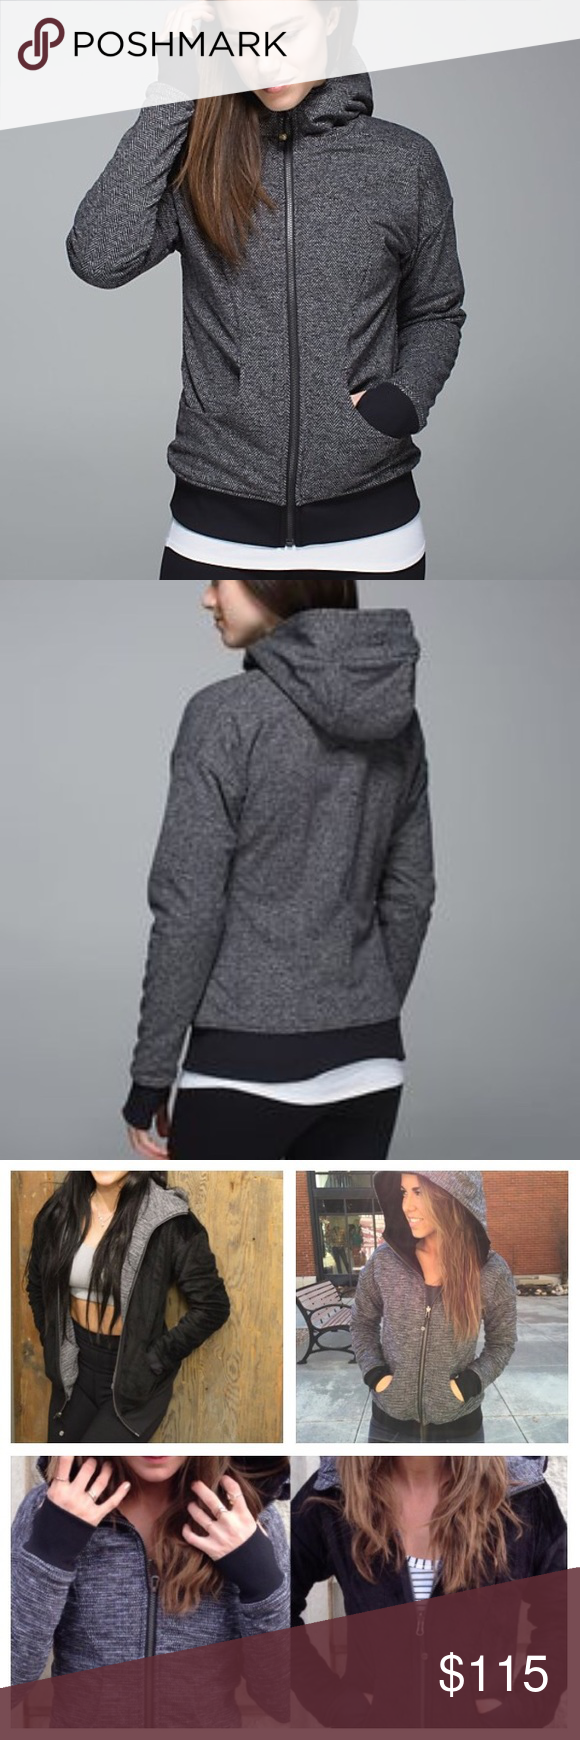 🎀 Lululemon Embrace Hoodie *Luscious Gorgeous, like new embrace hoodie, reversible, coco pique/black sherpa. Pockets and logo on both sides. Also has thumbholes. Super warm and cozy. lululemon athletica Jackets & Coats